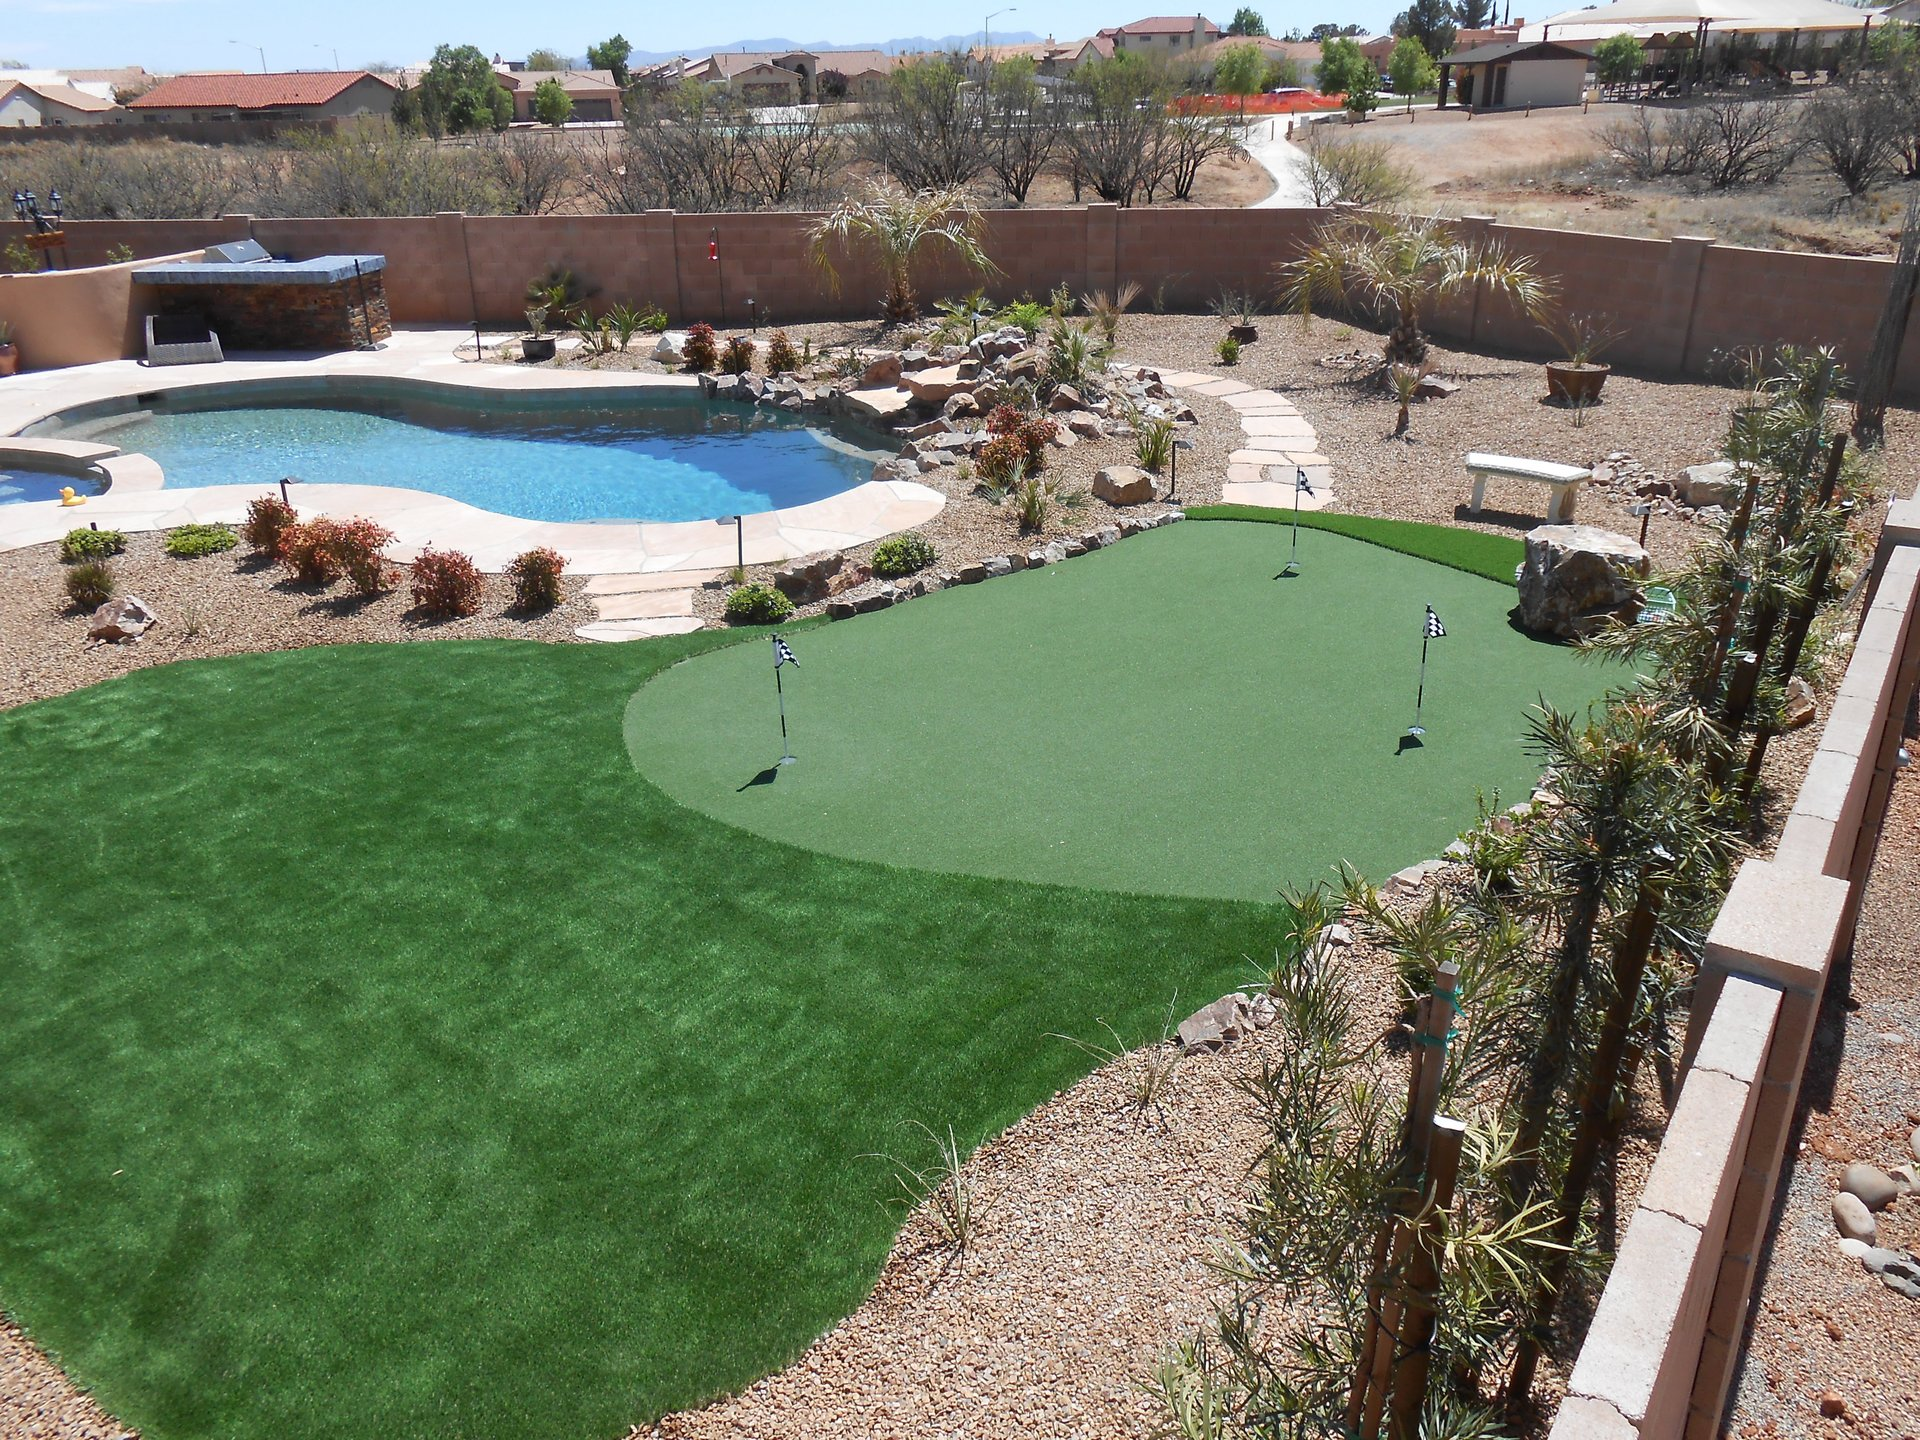 Arizona's Top Rated Local® Landscapers Award Winner: Grasshopper Landscaping